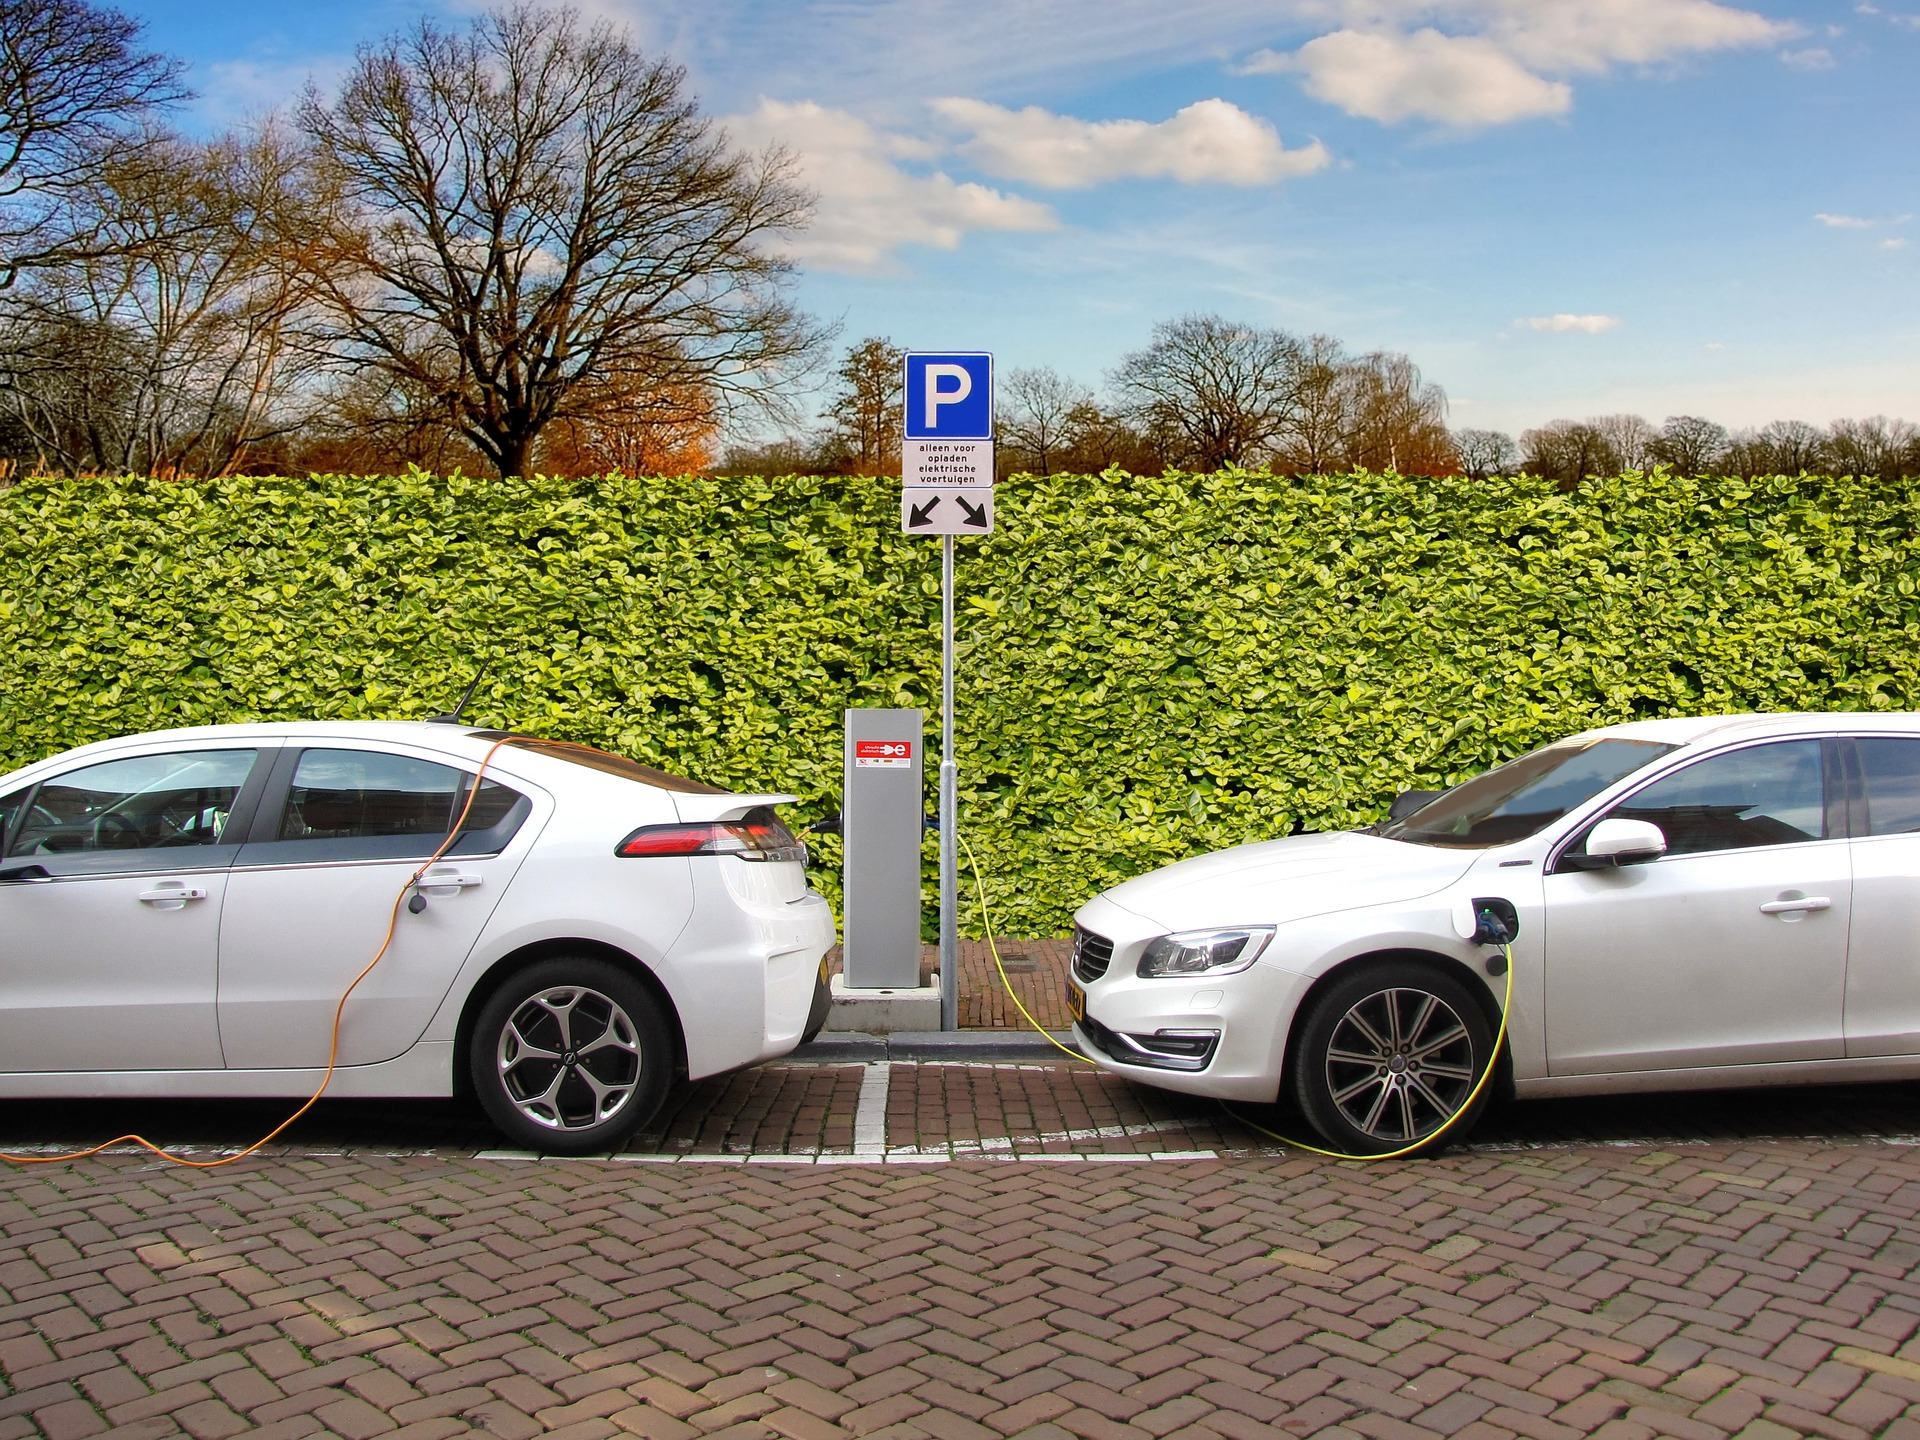 'Demystifying' Electric Cars Could Drive Up Demand